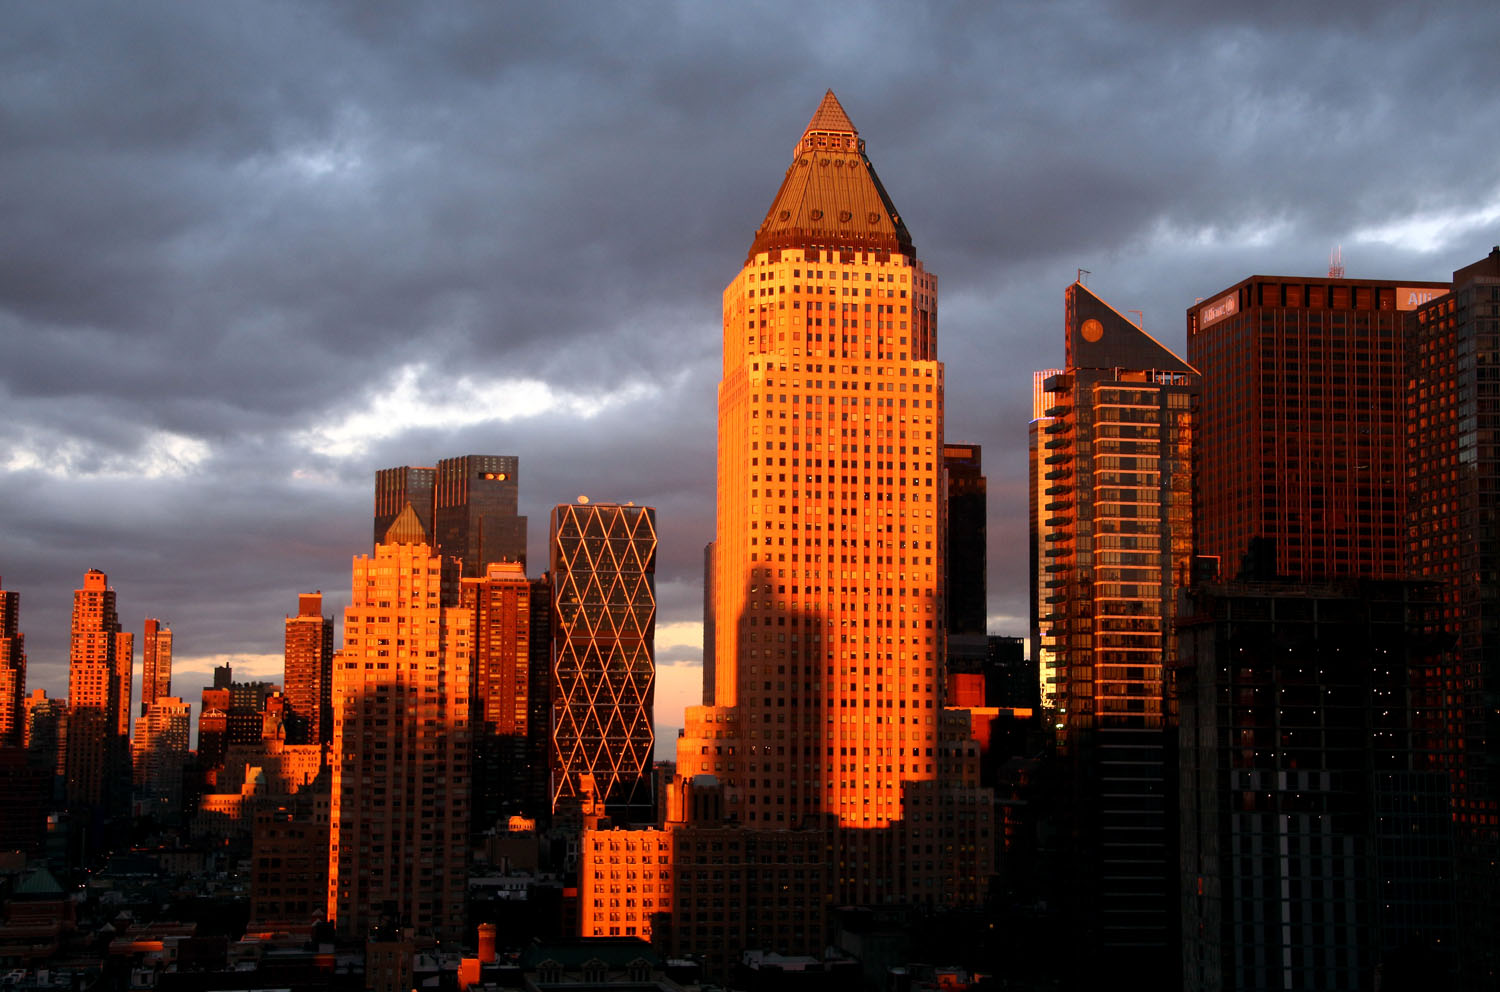 Pencil-Building-NYC-sunset